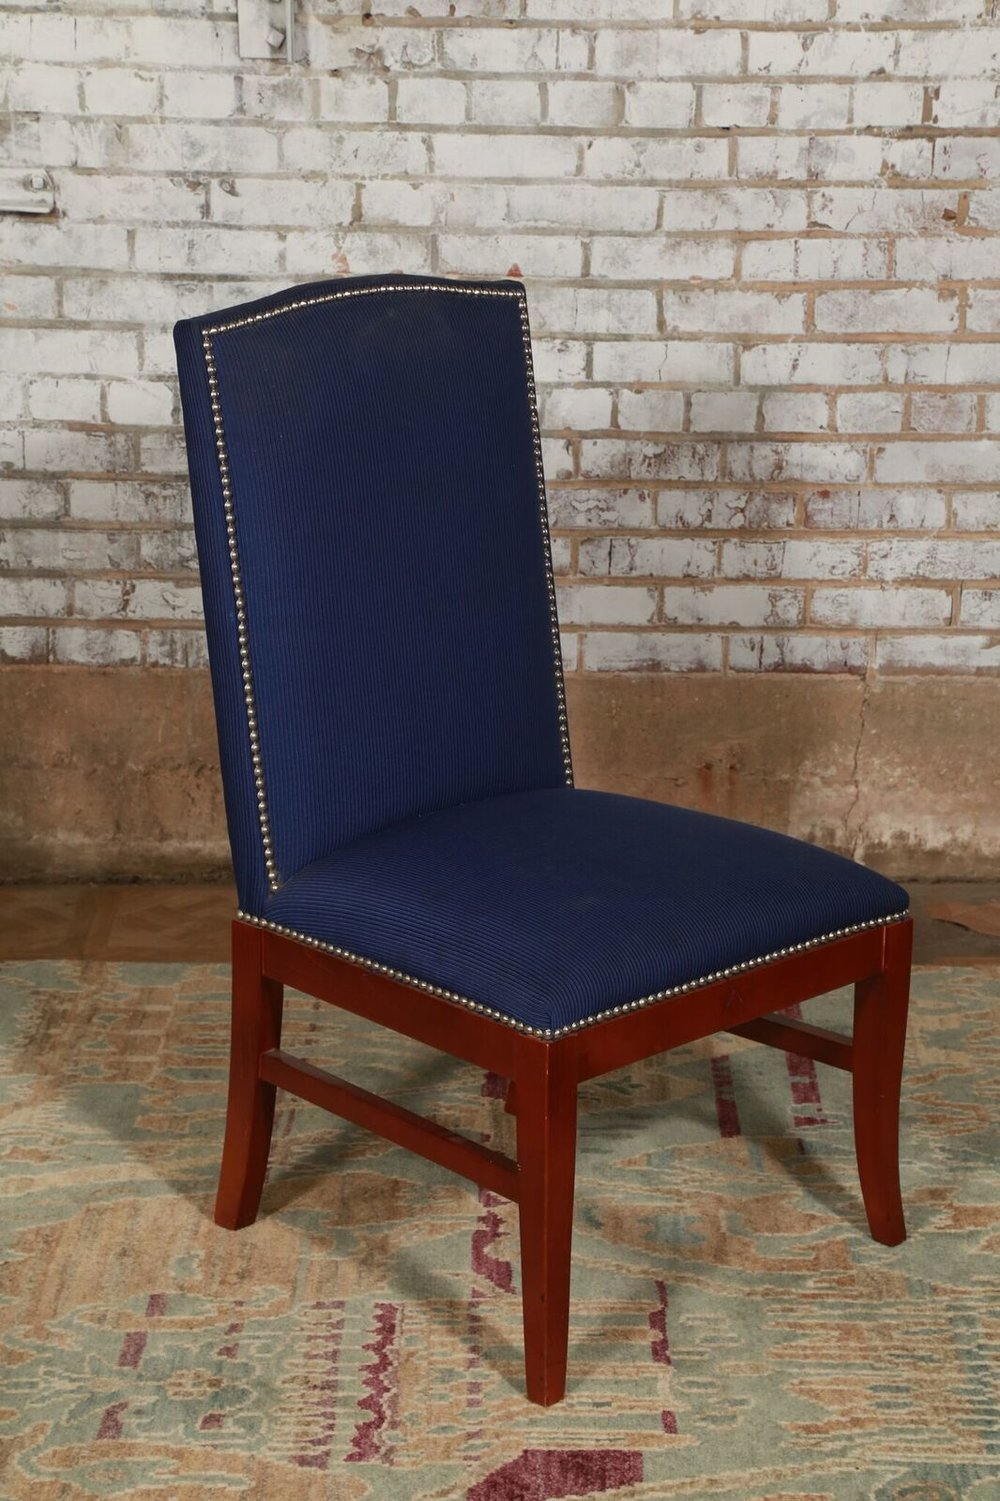 Blue Stud Chair $69